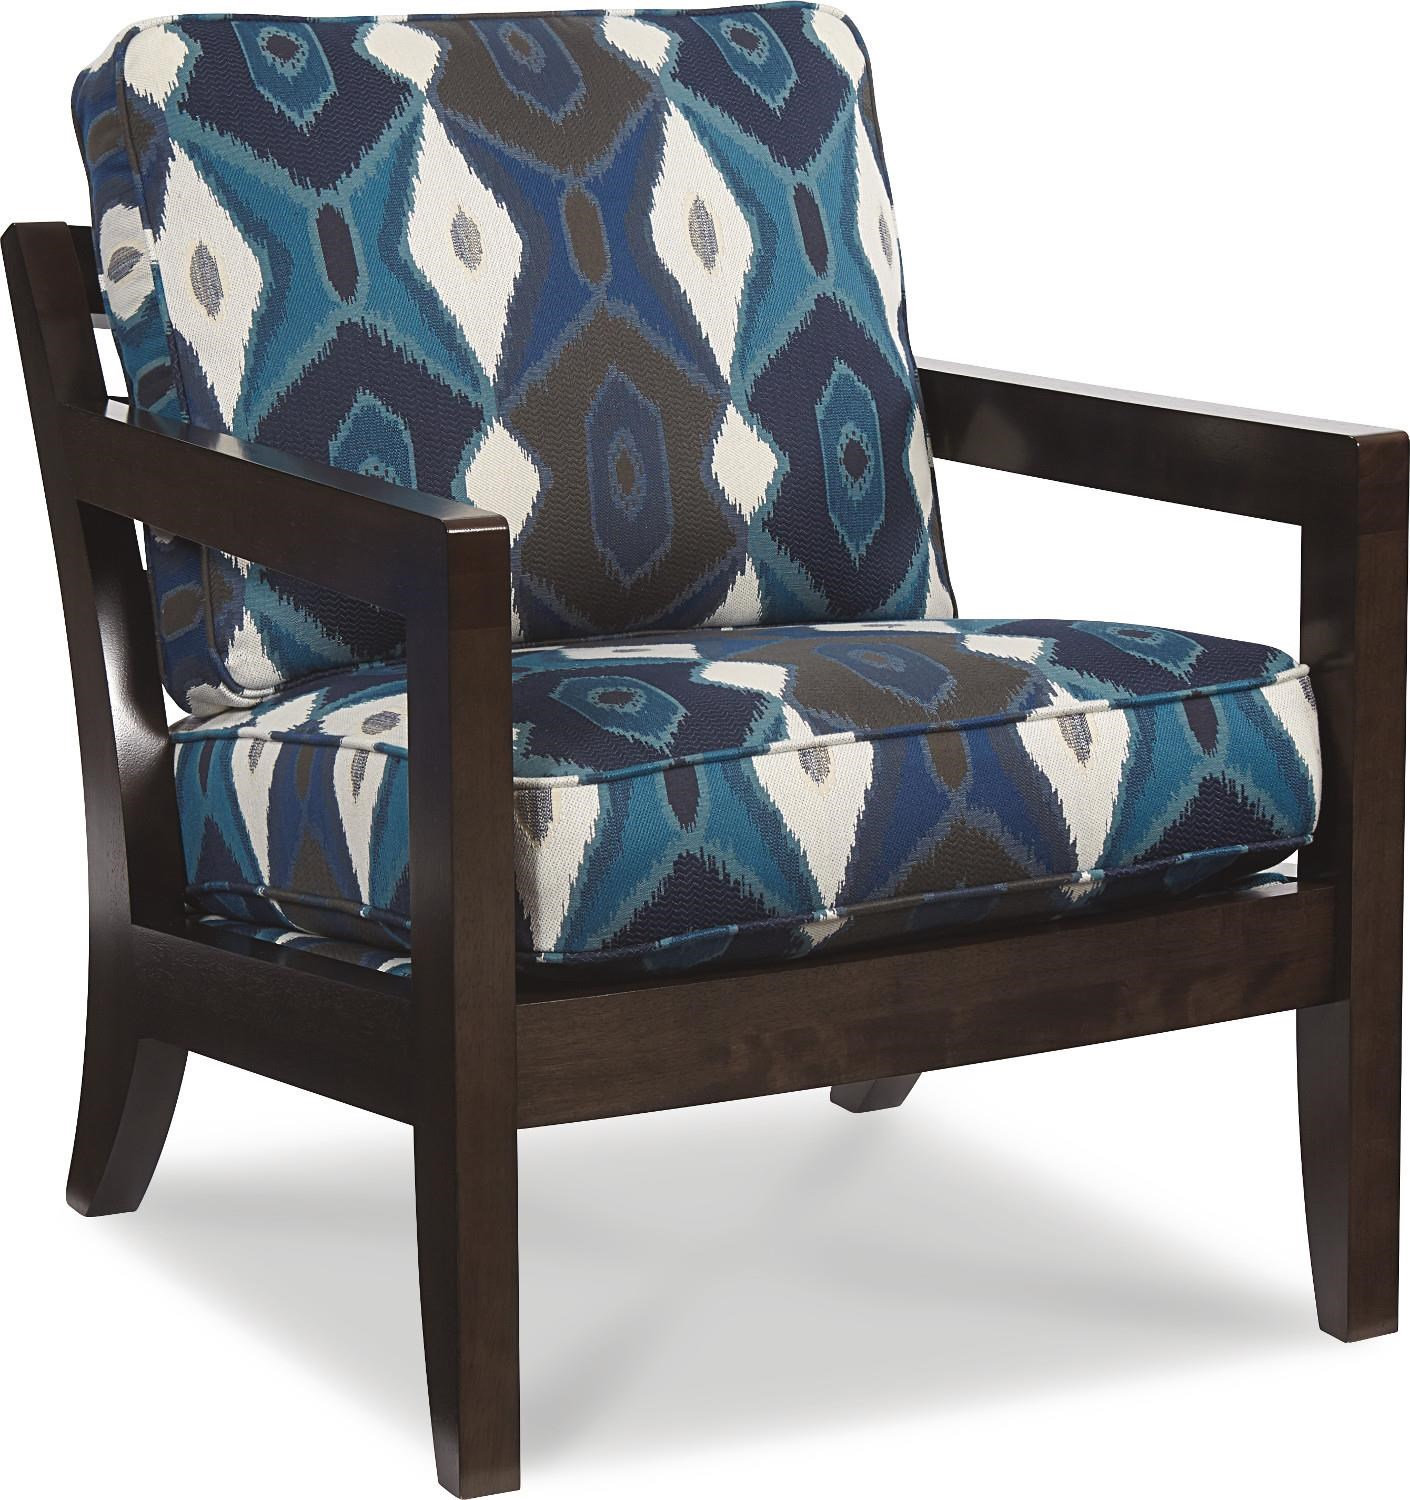 La Z Boy Chairs Gridiron Exposed Wood Chair